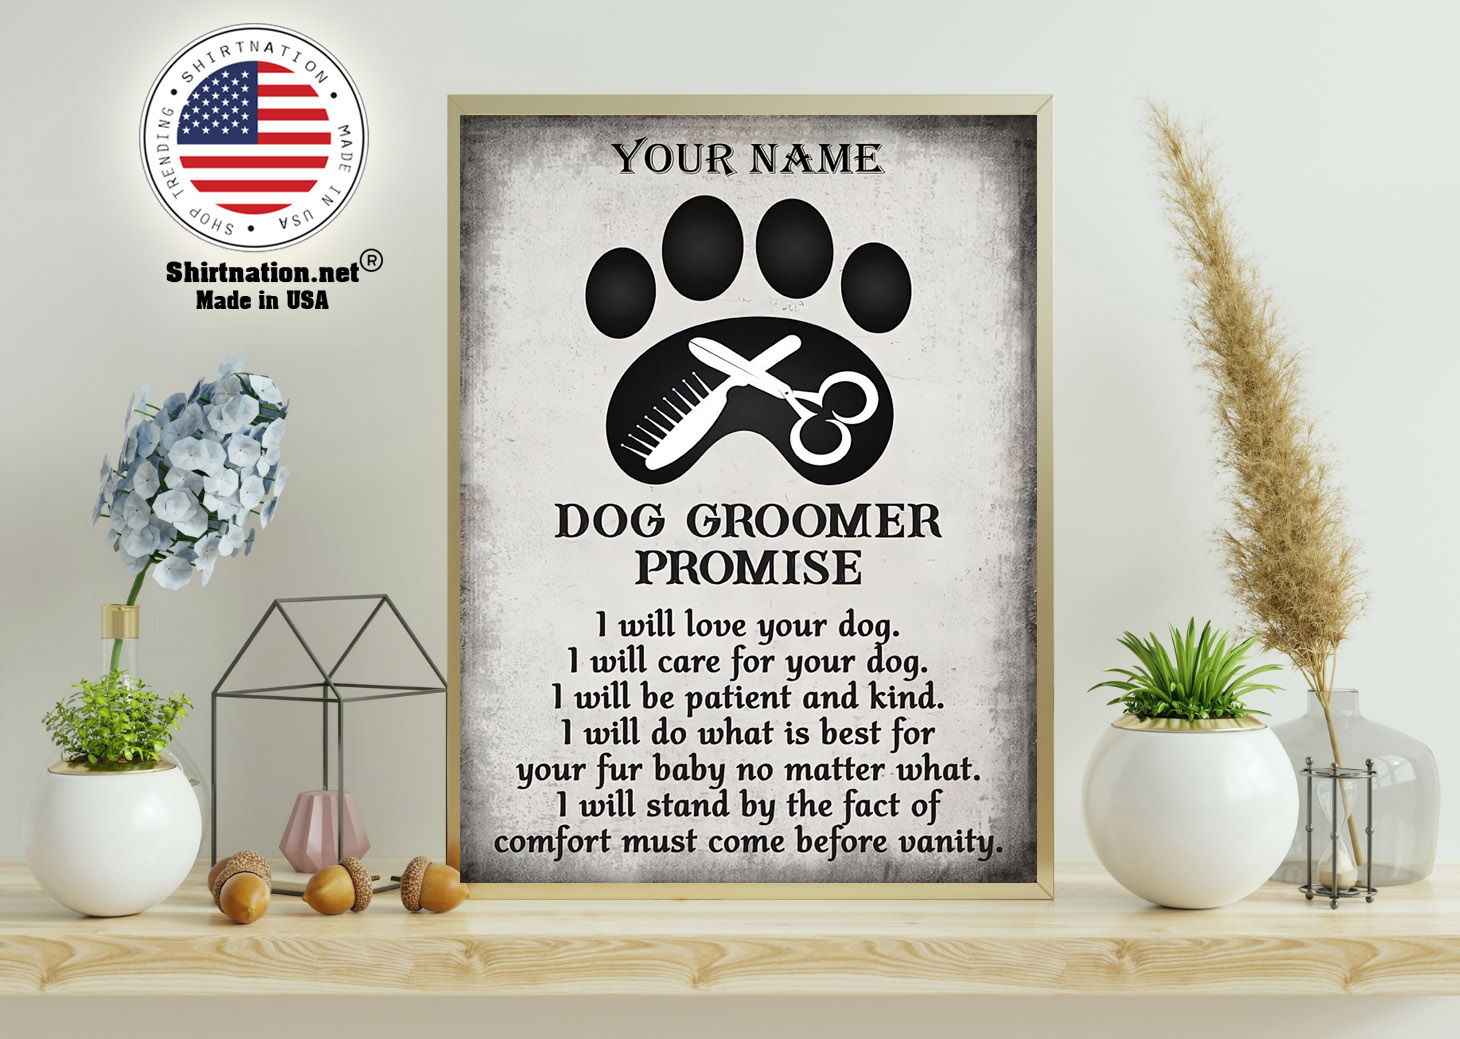 Dog groomer promise I will love your dog I will care for your dog custom name poster 11